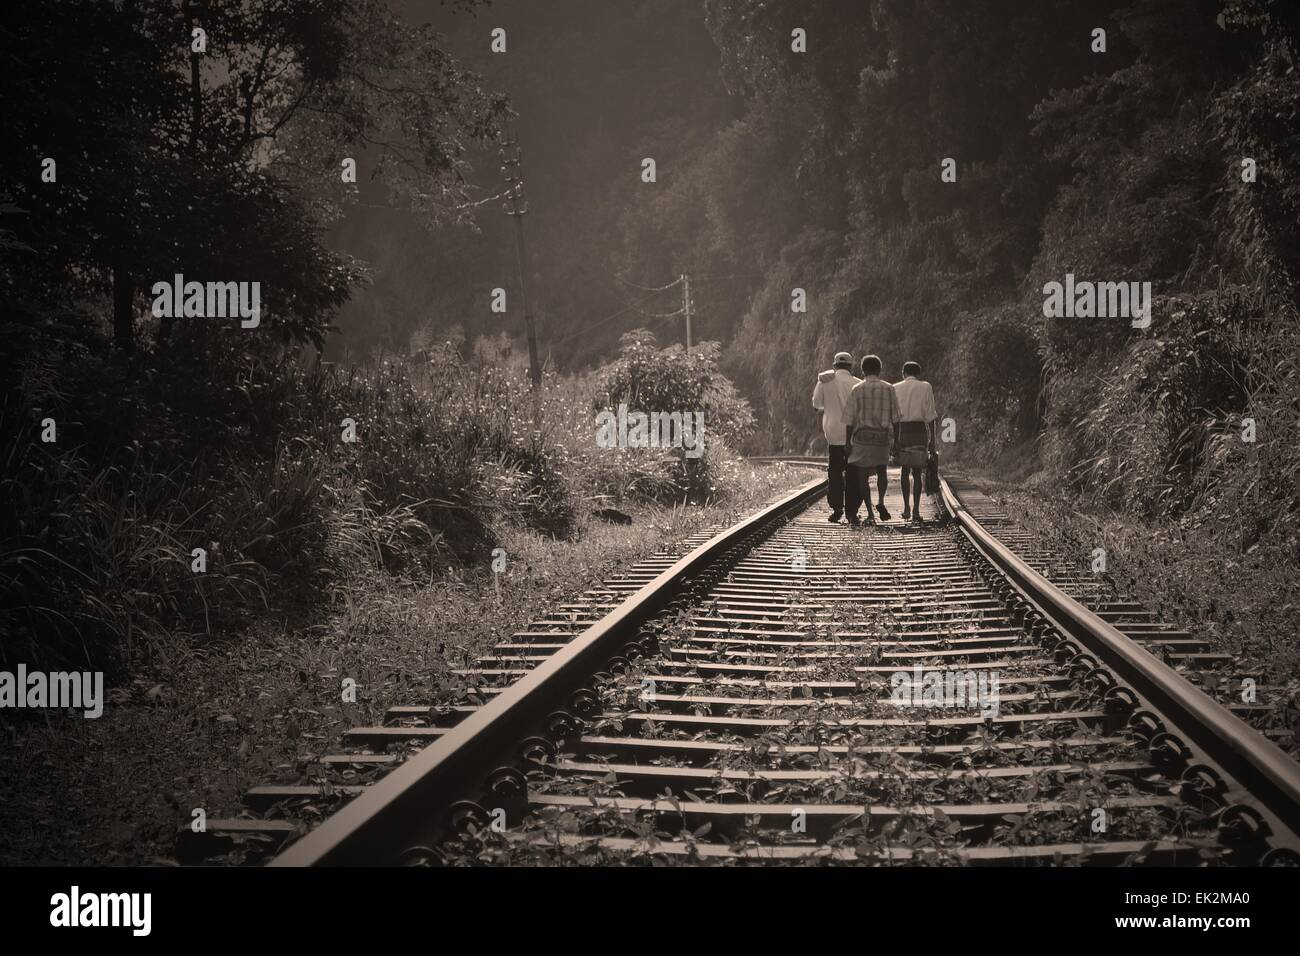 Kids at a distance walking on old railway tracks - Stock Image